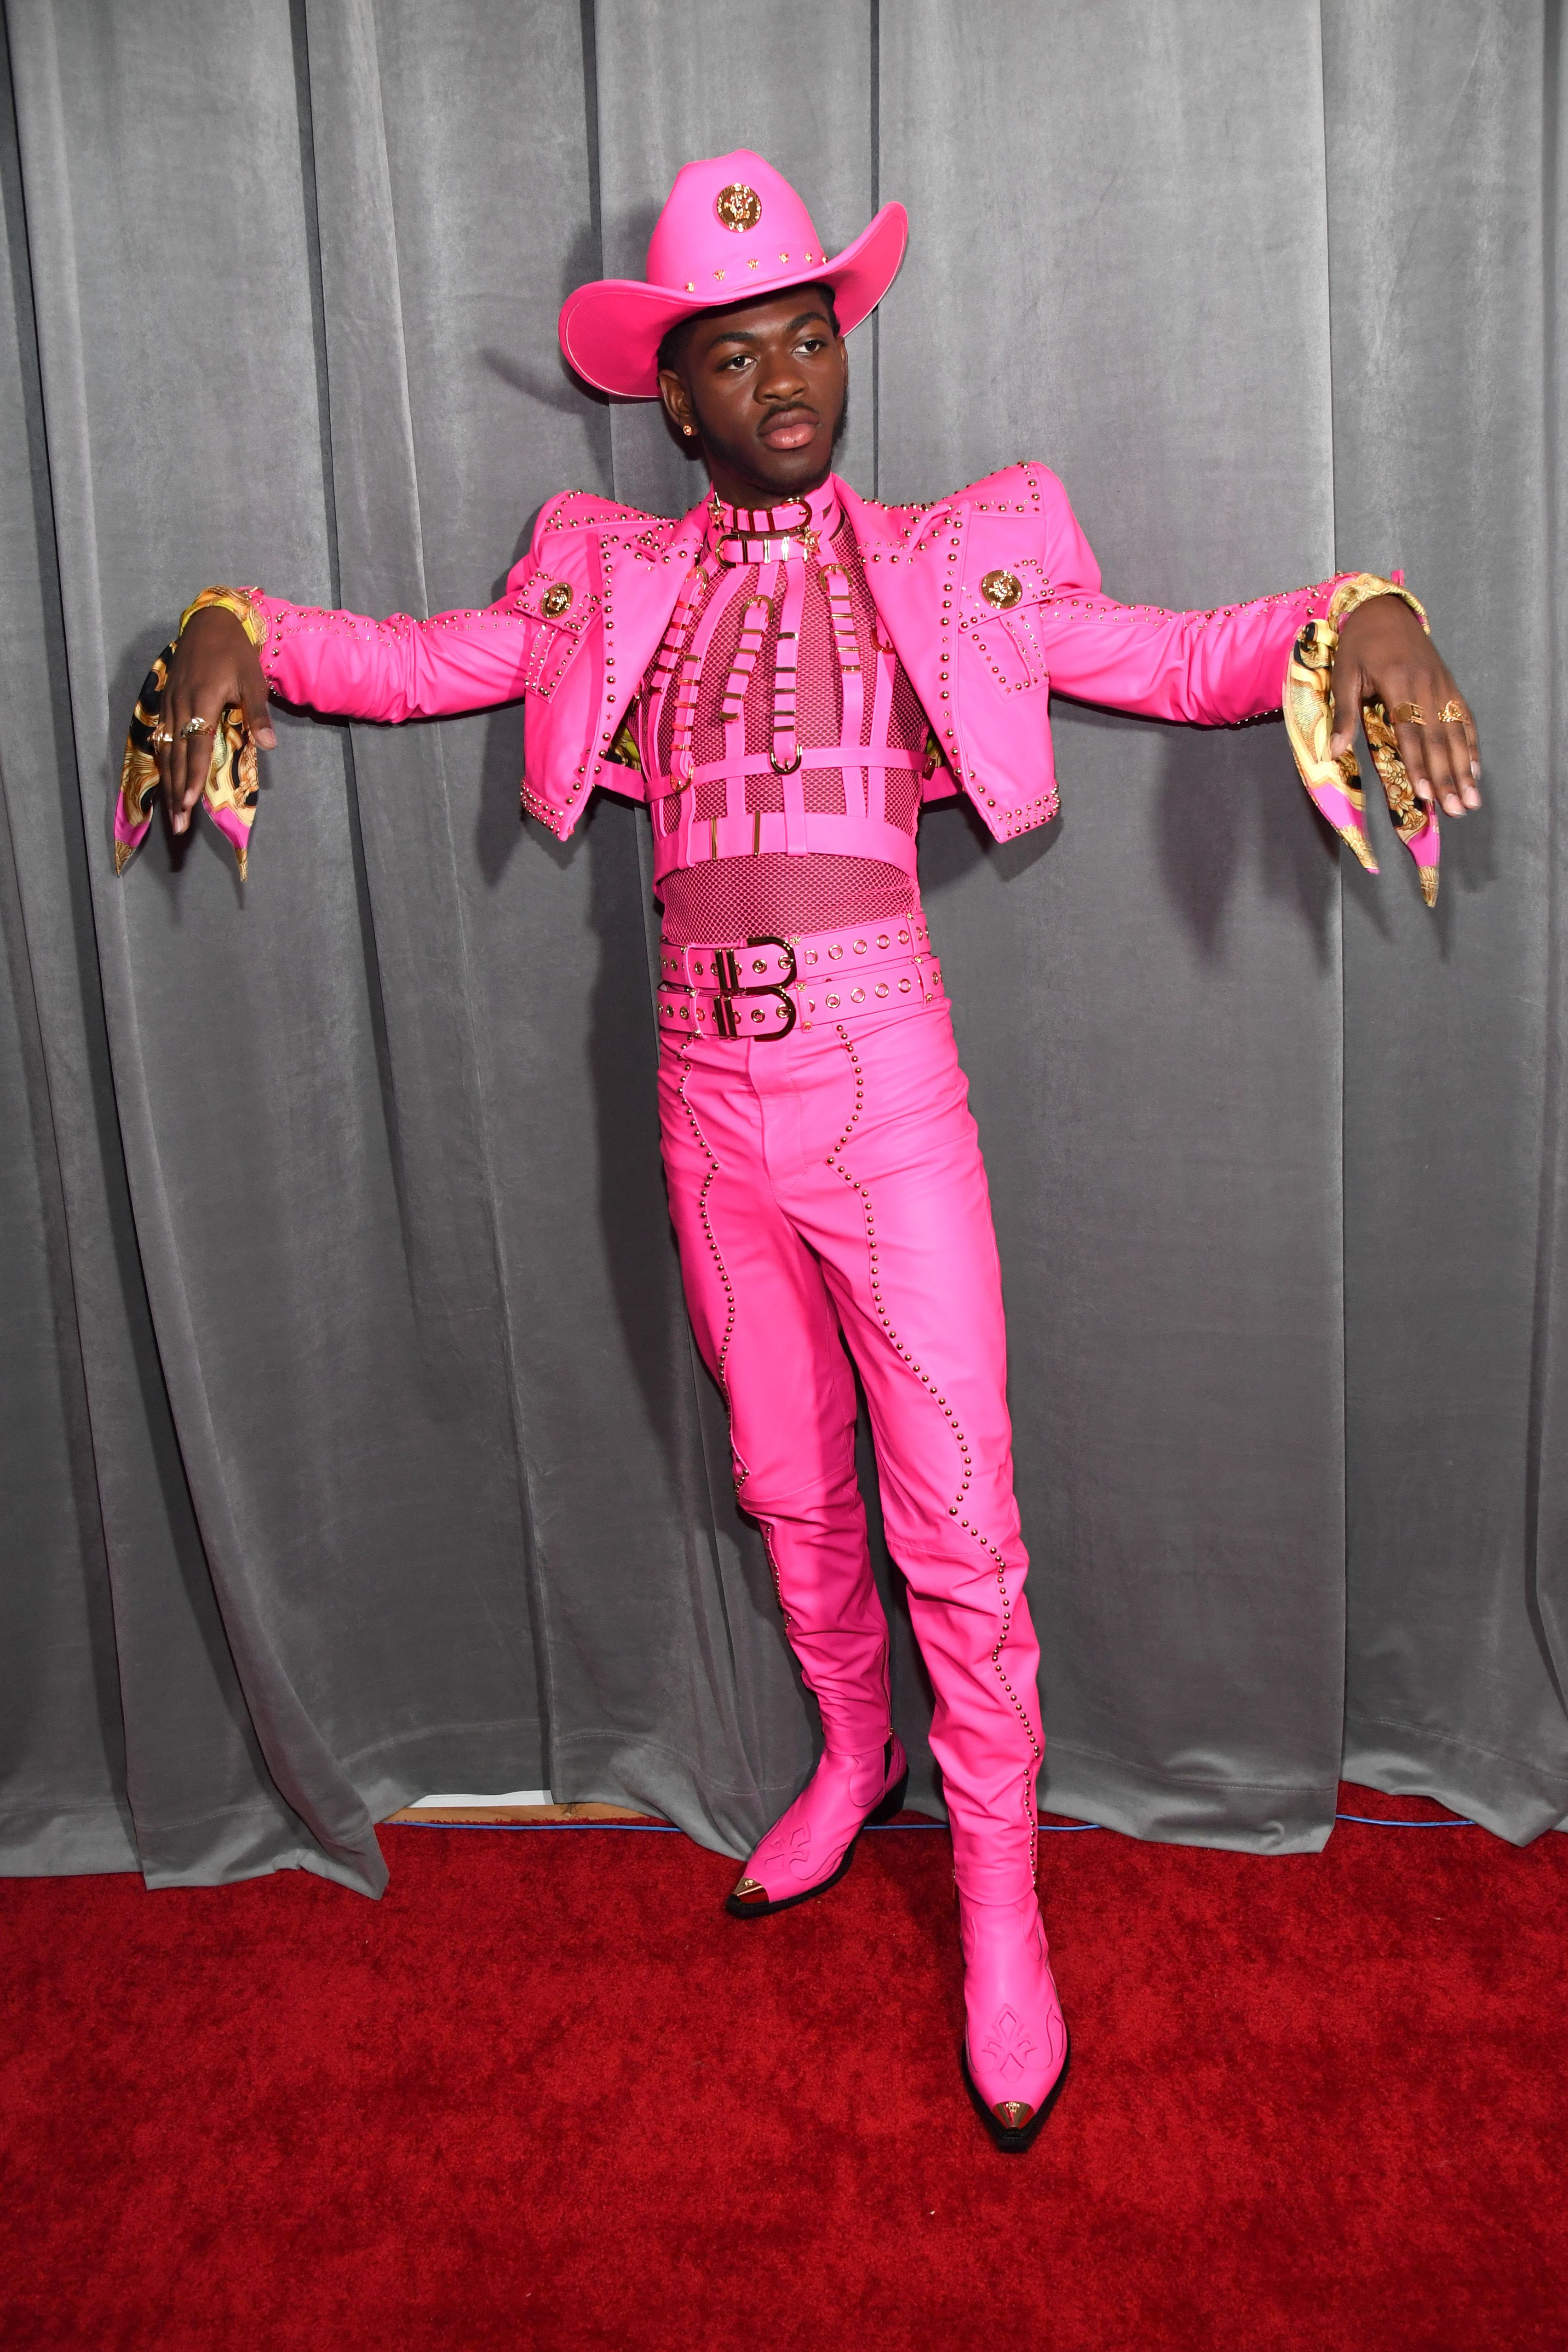 Pink Suit Meme : Wearing, Suits, Grammys, Every